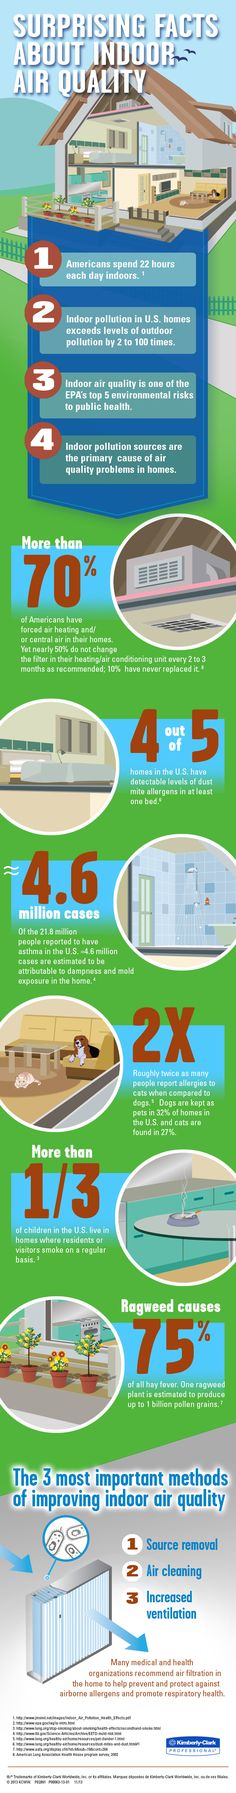 Take a look at these surprising facts about indoor air quality! | Pass One Hour Heating & Air Conditioning | (618) 997-6471 | www.passonehour.com